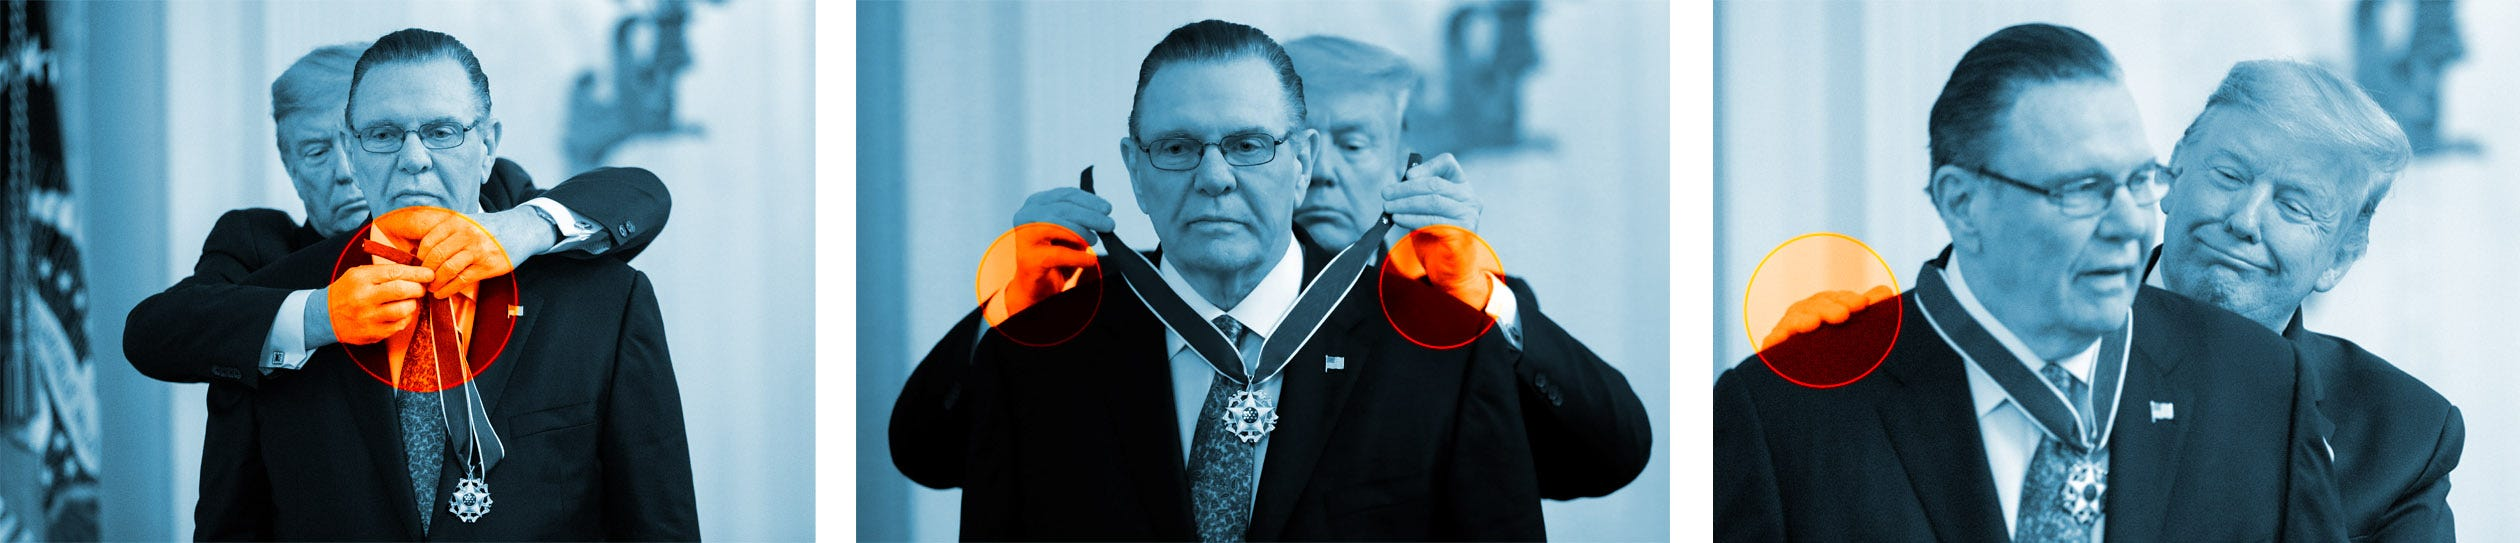 MARCH 10: President Donald Trump presents the Presidential Medal of Freedom to former Vice Chief of Staff Army Gen. Jack Keane in the East Room of the White House.